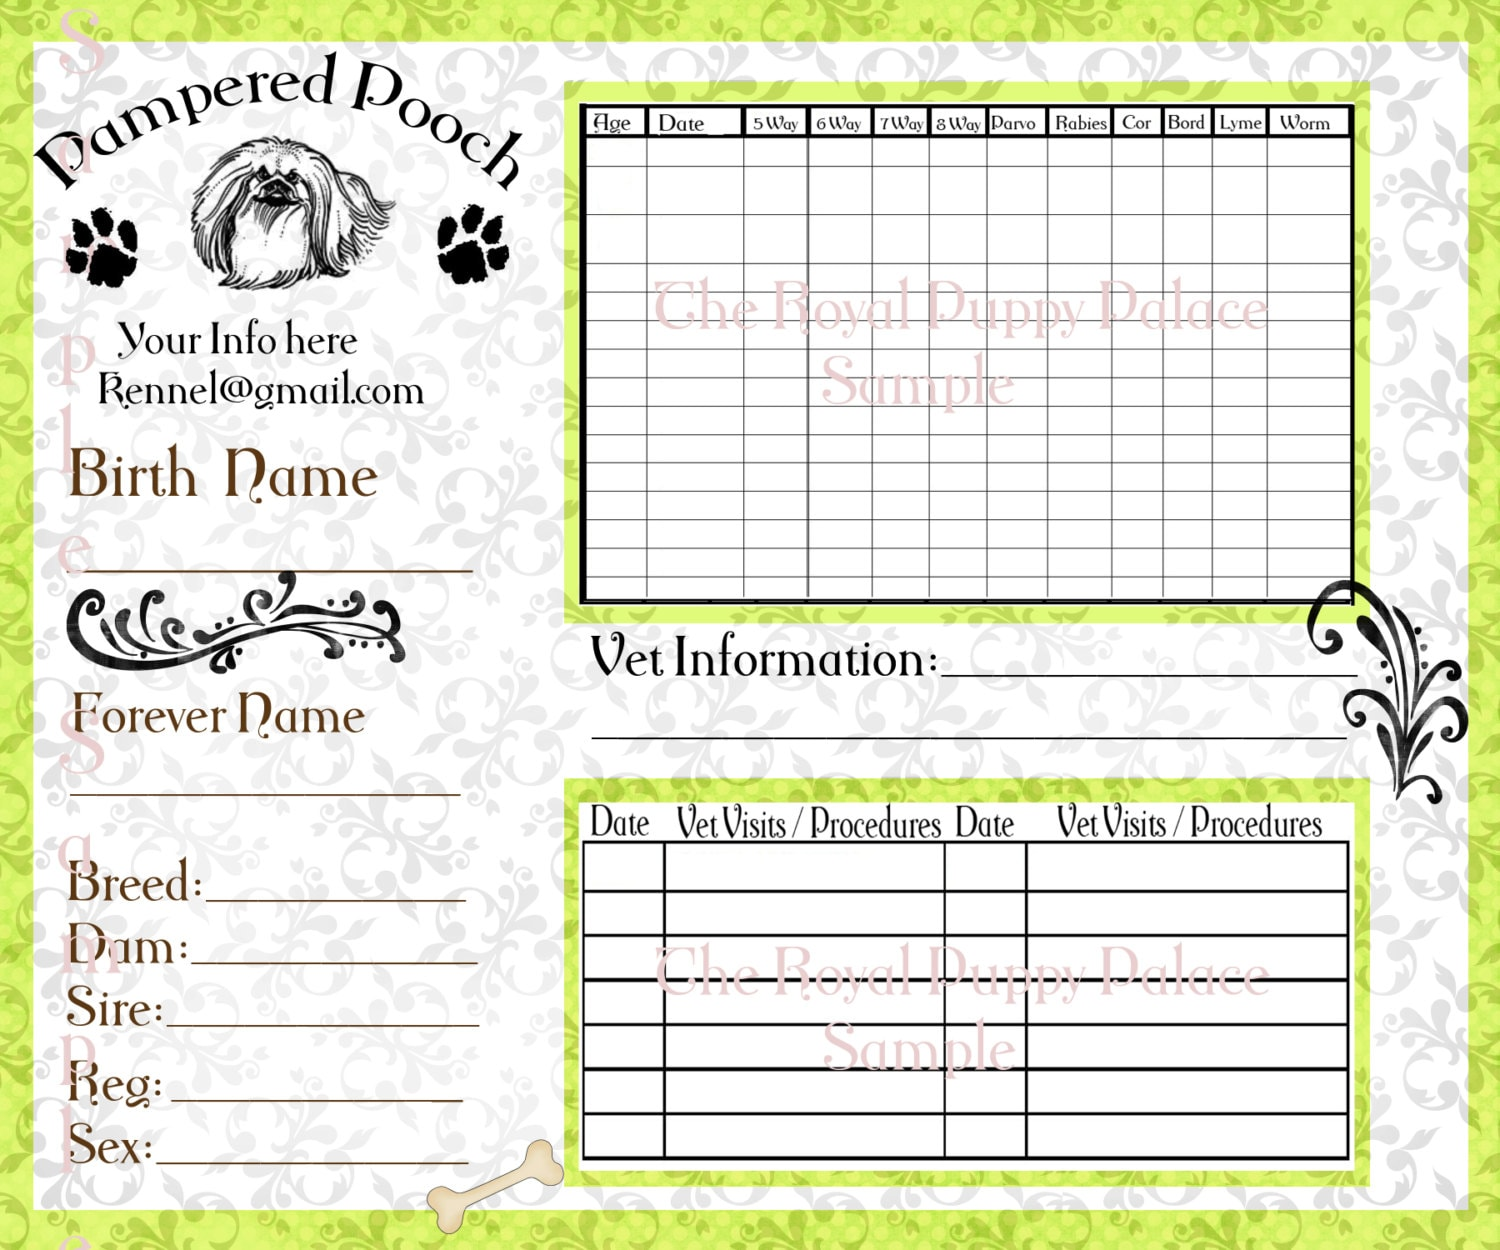 Crafty image with printable dog vaccination record